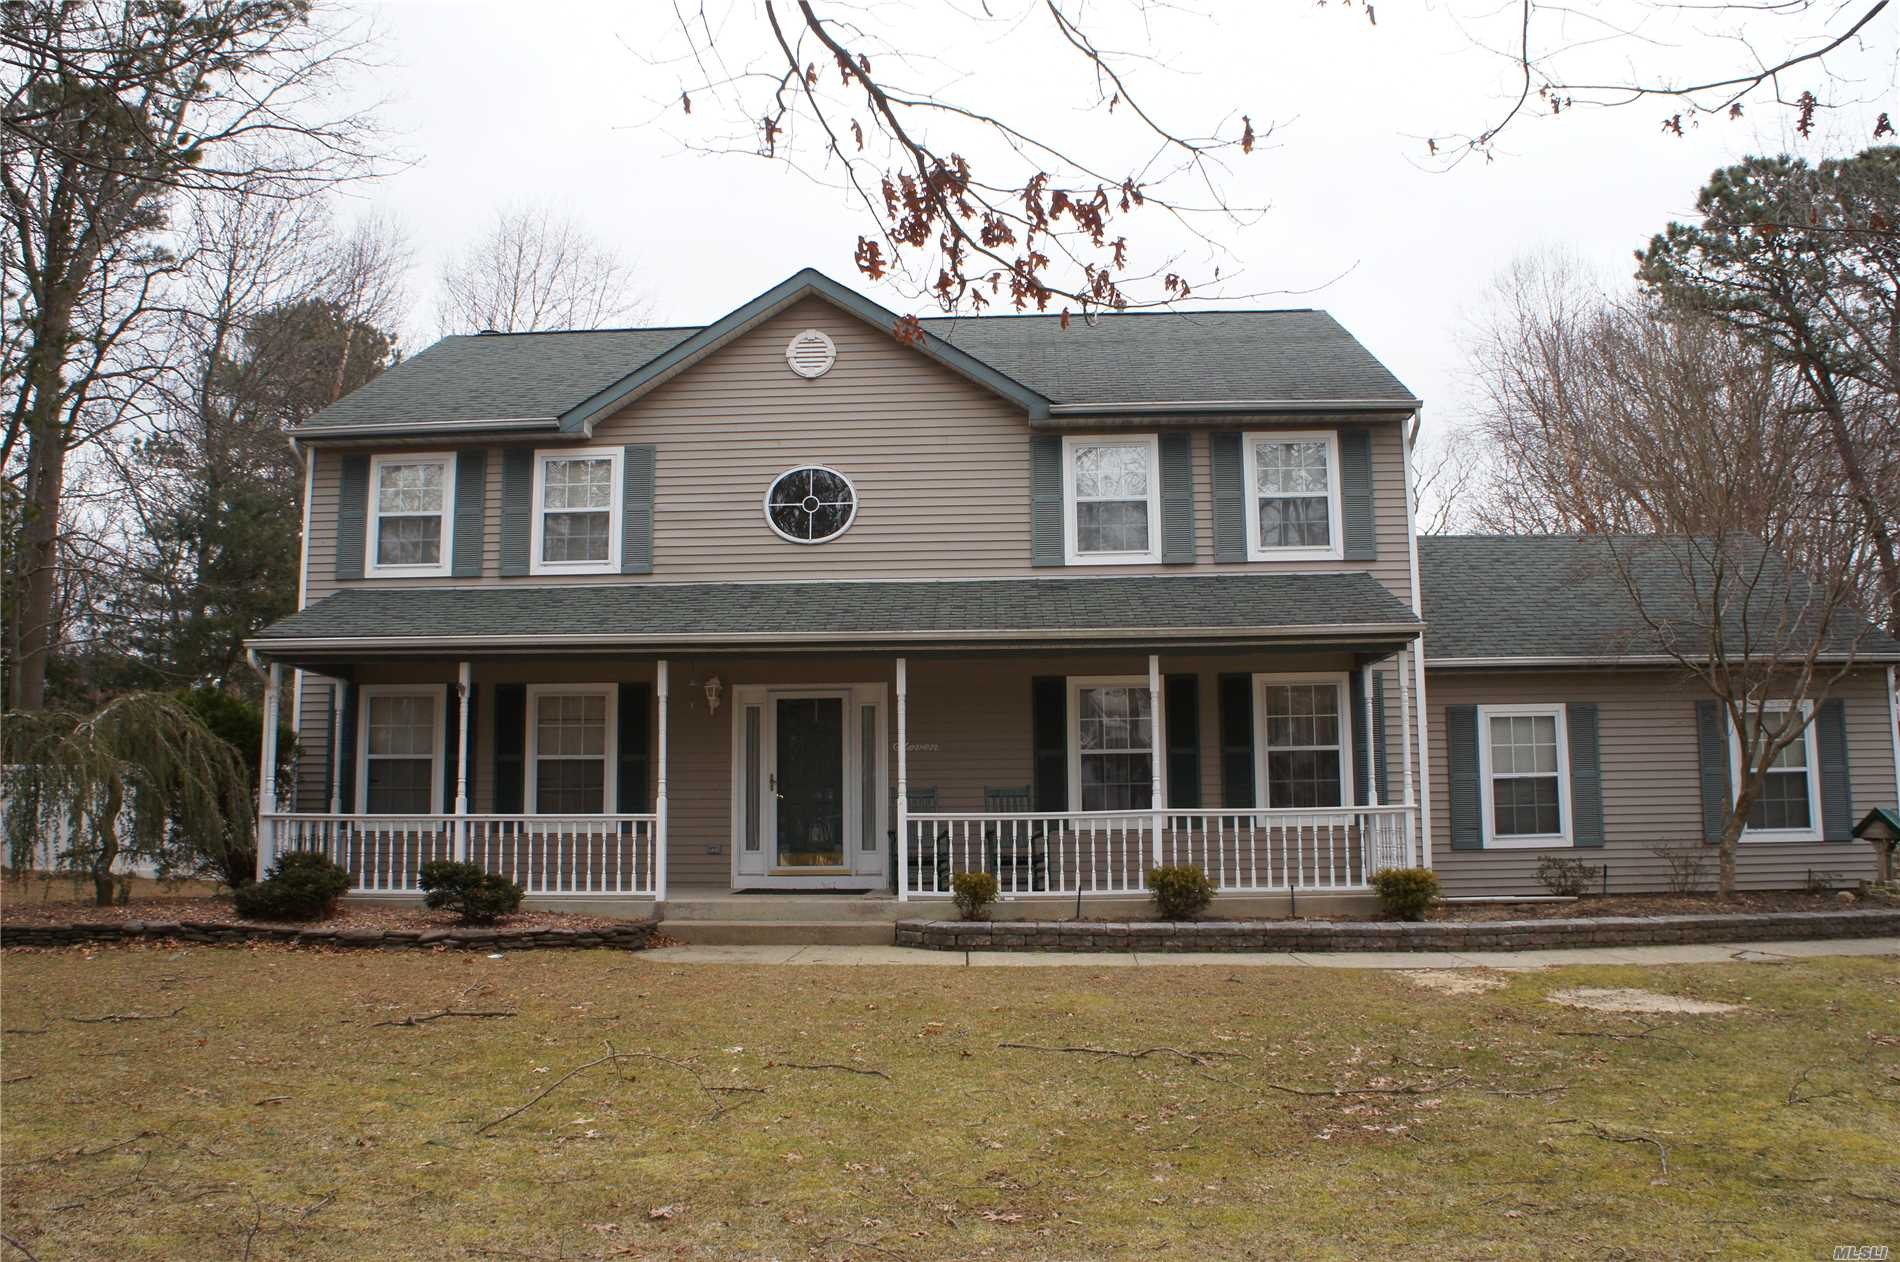 This Beautiful Colonial In The Heart Of Manorville. This 4 Bedroom, 2 1/2 Bath Home Has A Formal Living Room, Dining Room, Den W/Fireplace & Full Basement With Natural Gas. The Park Like Backyard Is Home To An Incredible Inground Pool And Room For More. This Home Is A Must See!!!